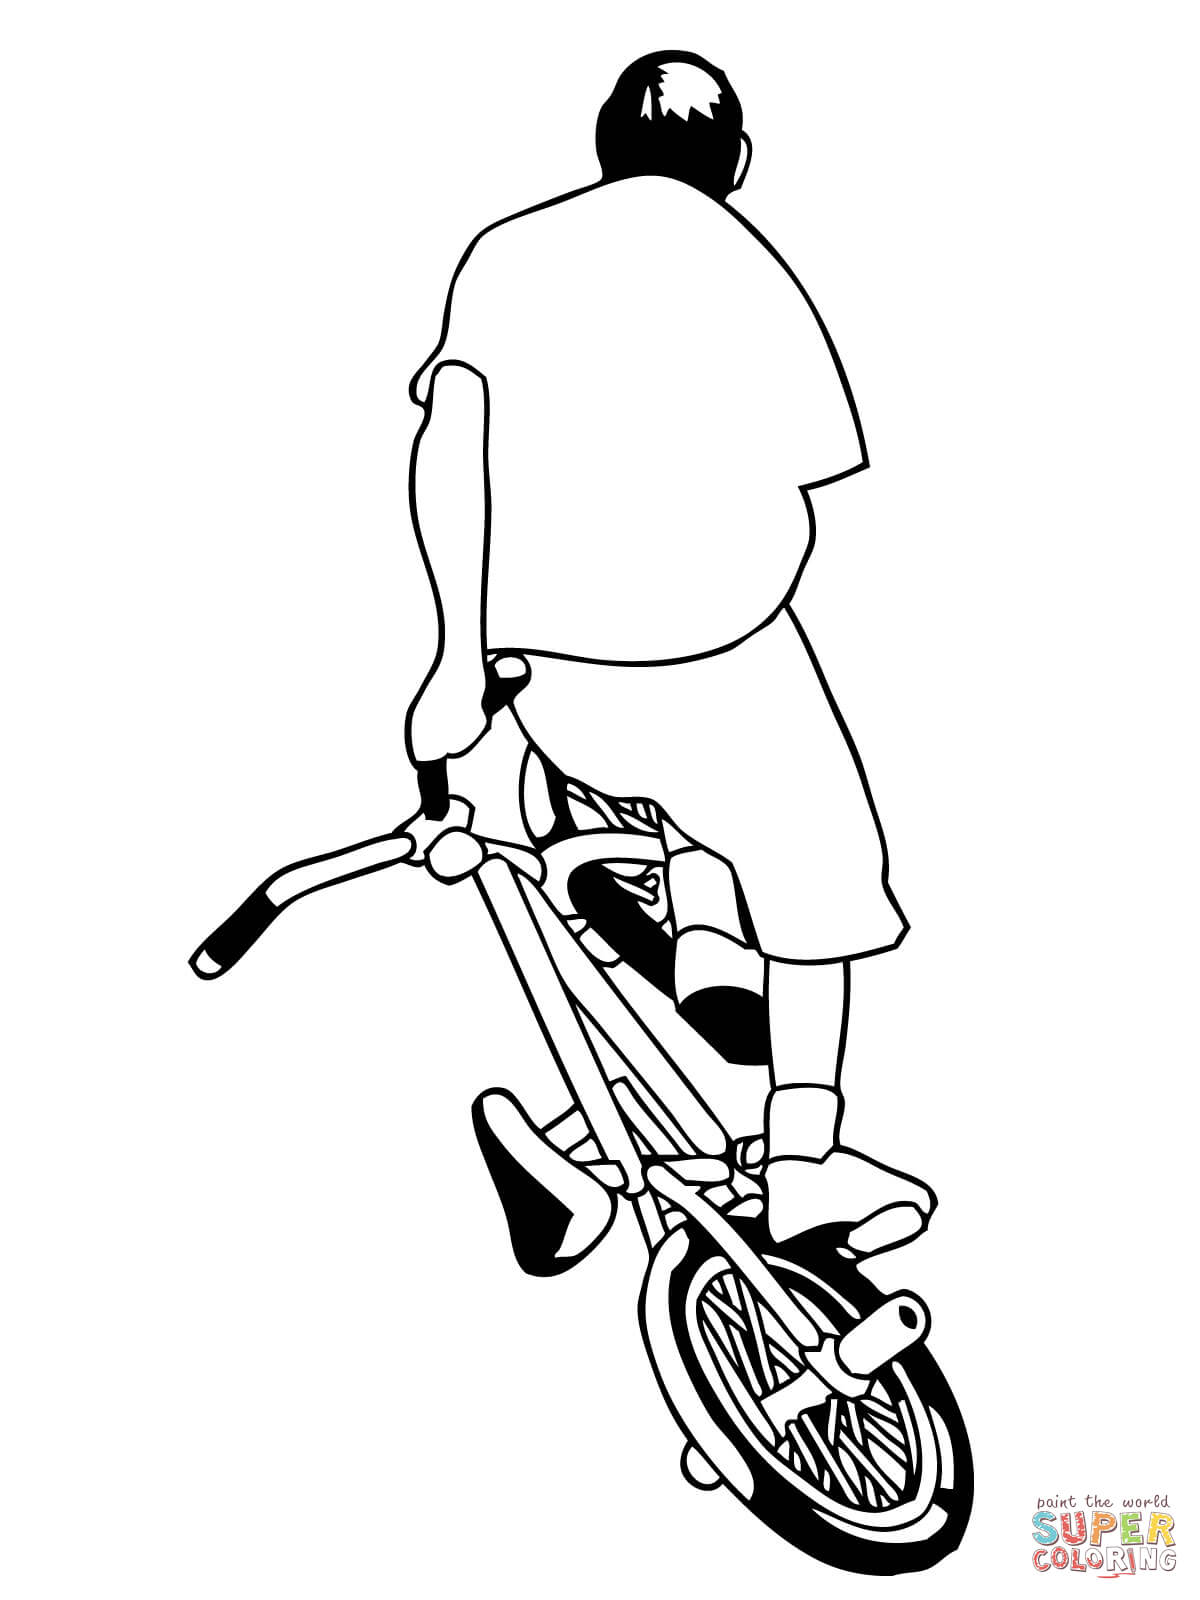 bmx printable coloring pages bmx coloring page coloring home bmx printable pages coloring 1 1